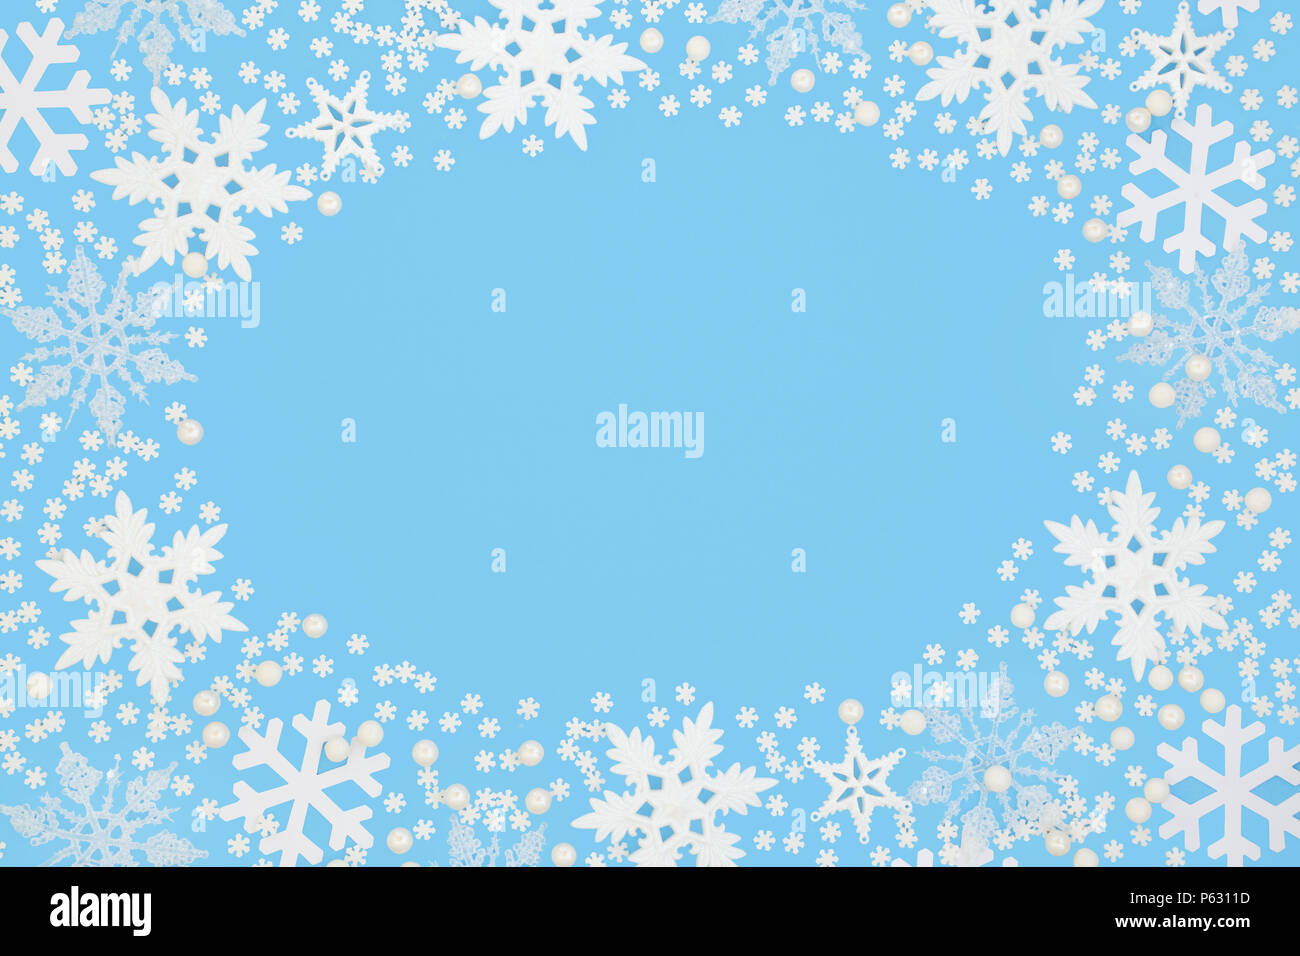 snowflake abstract background border on pastel blue background festive card for the christmas holiday and winter season